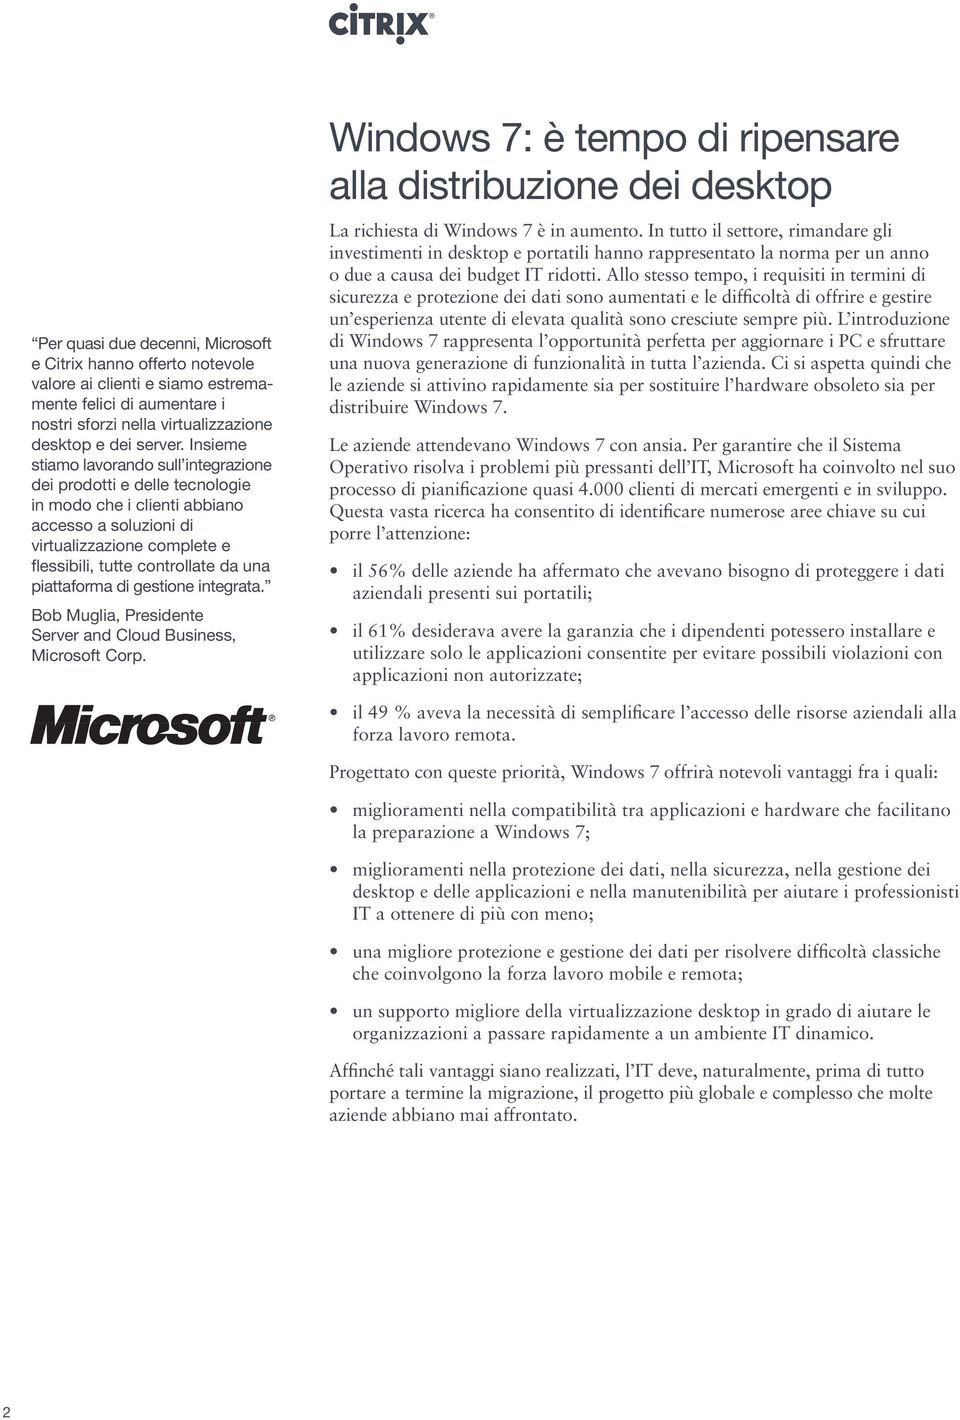 piattaforma di gestione integrata. Bob Muglia, Presidente Server and Cloud Business, Microsoft Corp.